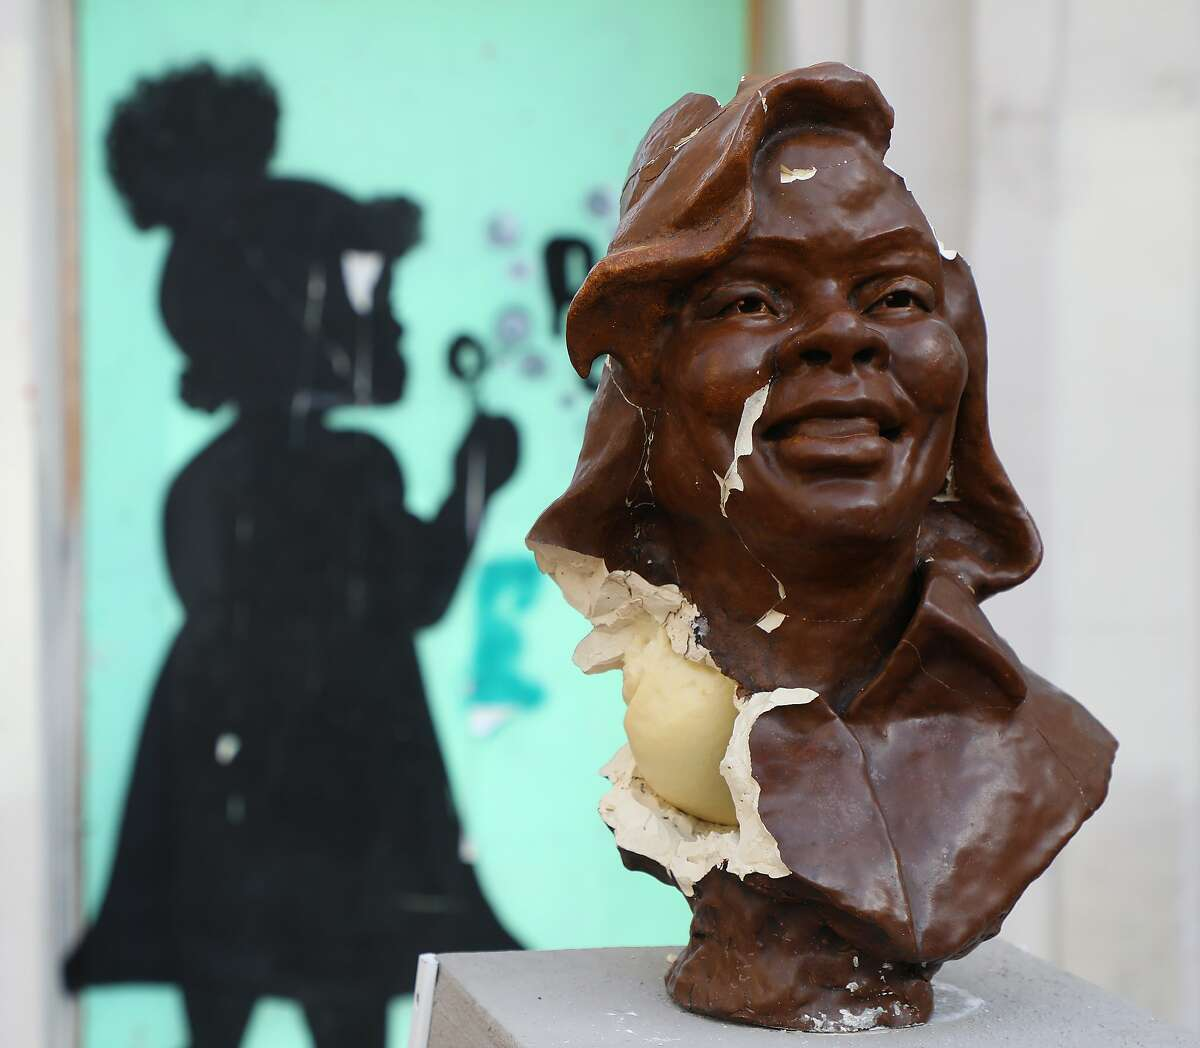 A broken bust of Breonna Taylor is shown on Sunday, Dec. 27, 2020, in Oakland. Police are investigating after the sculpture of Breonna Taylor was smashed to pieces in downtown Oakland over the weekend, authorities said.